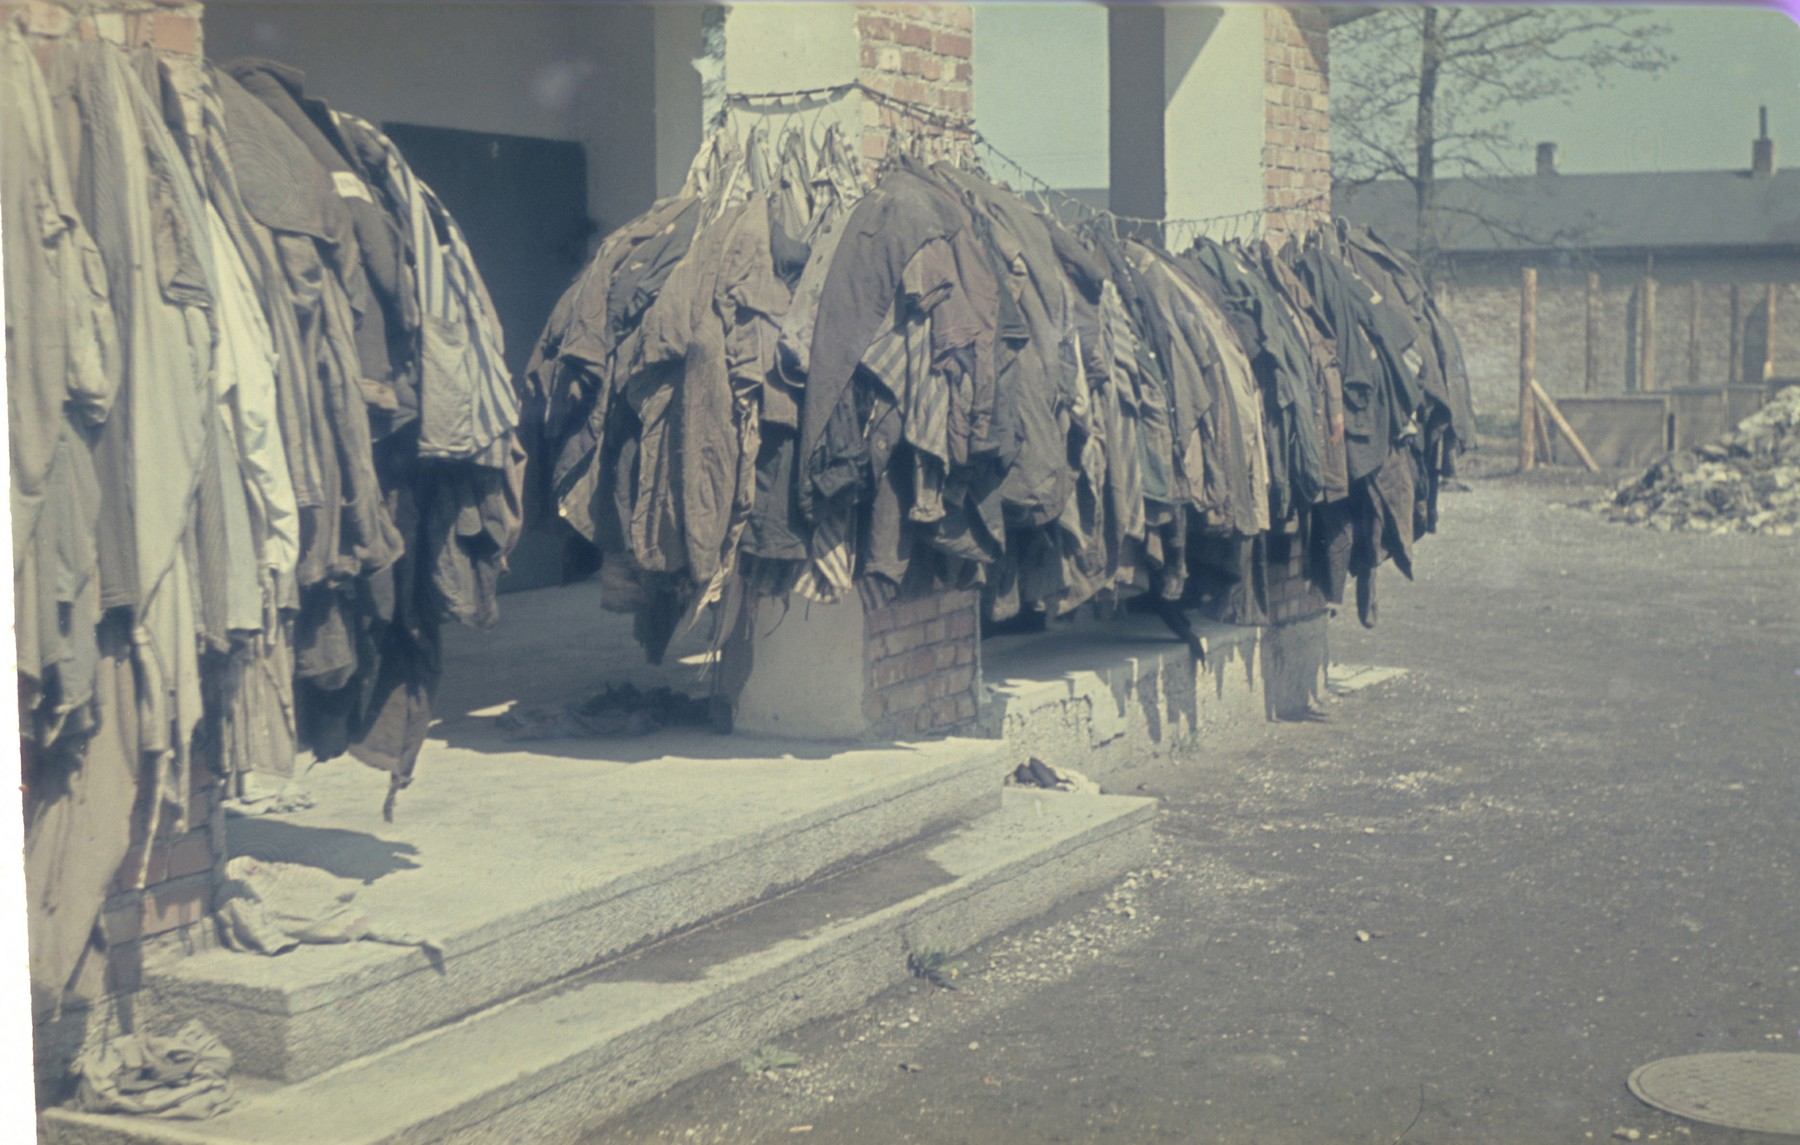 Prisoners' clothing and uniforms hang outside the crematorium in the newly liberated Dachau concentration camp.